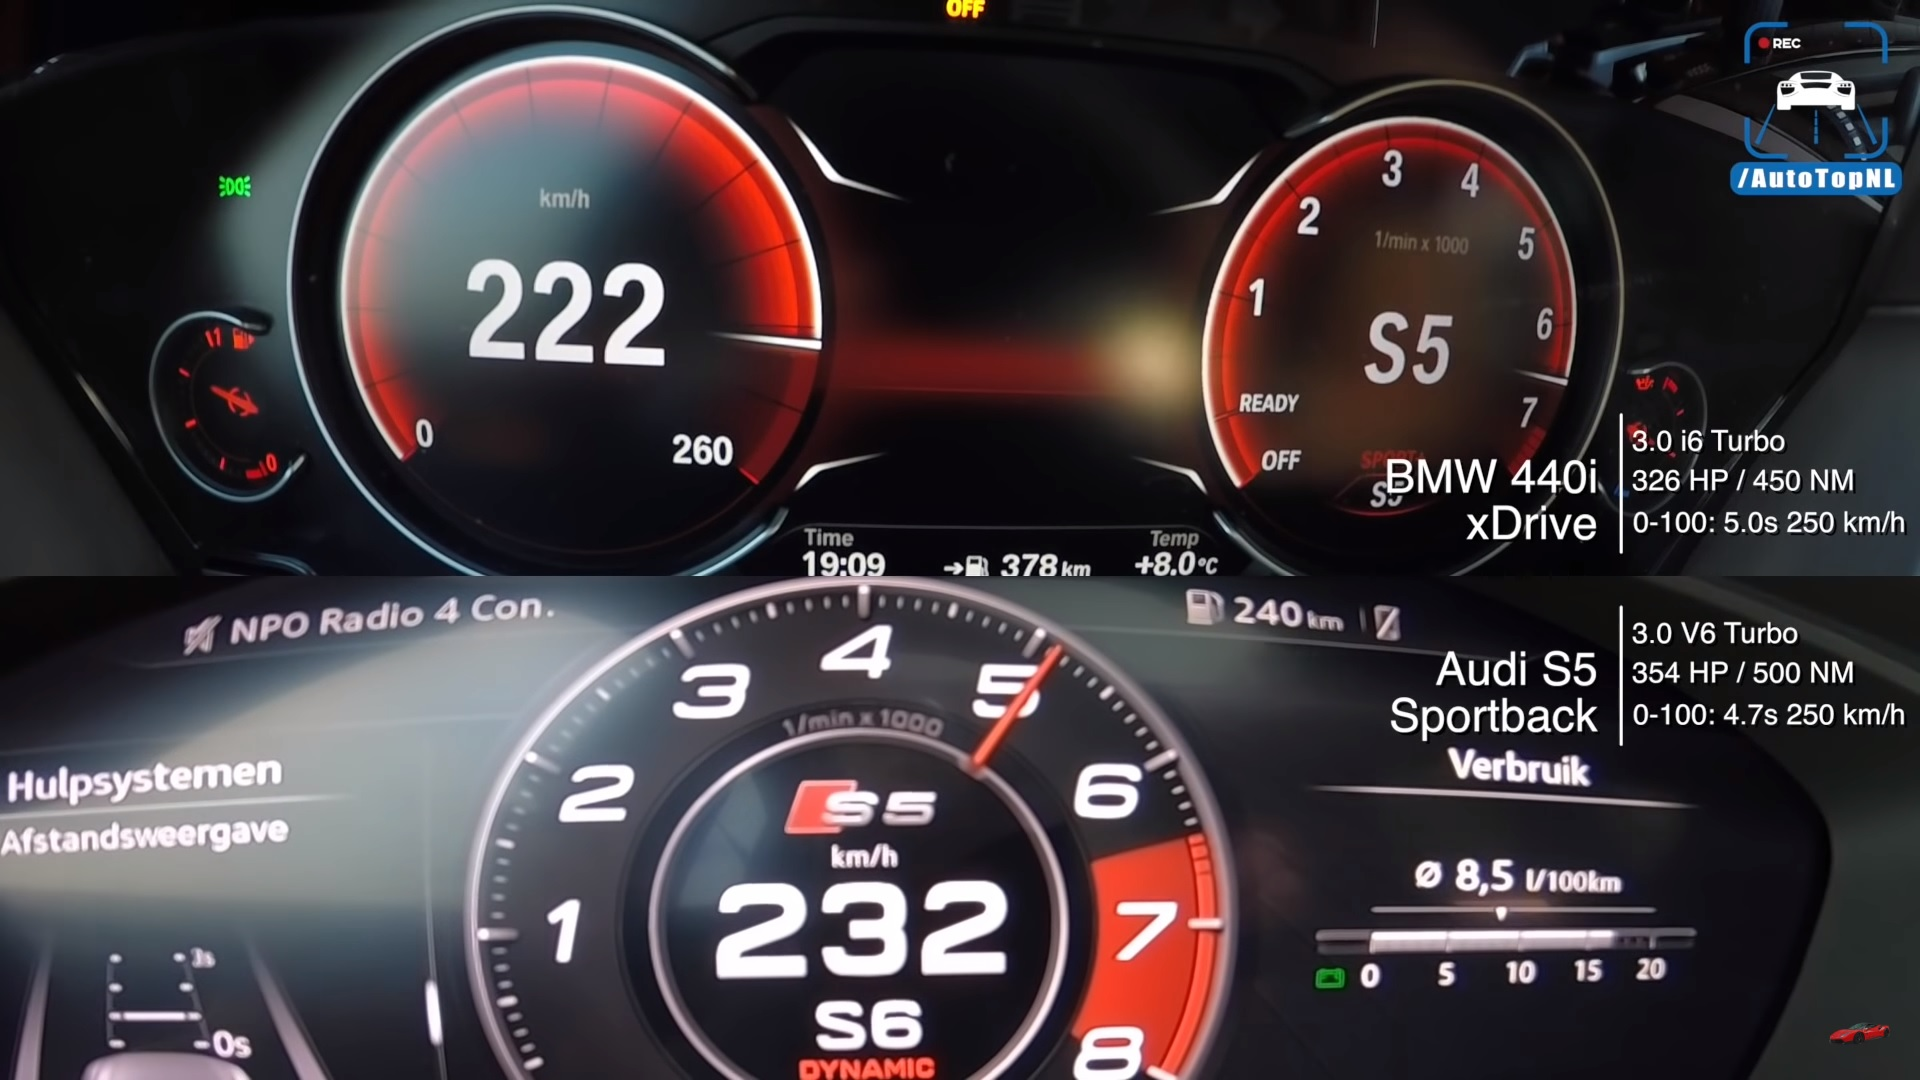 Check Out This Cool Acceleration Test Between A BMW 440i Gran Coupe